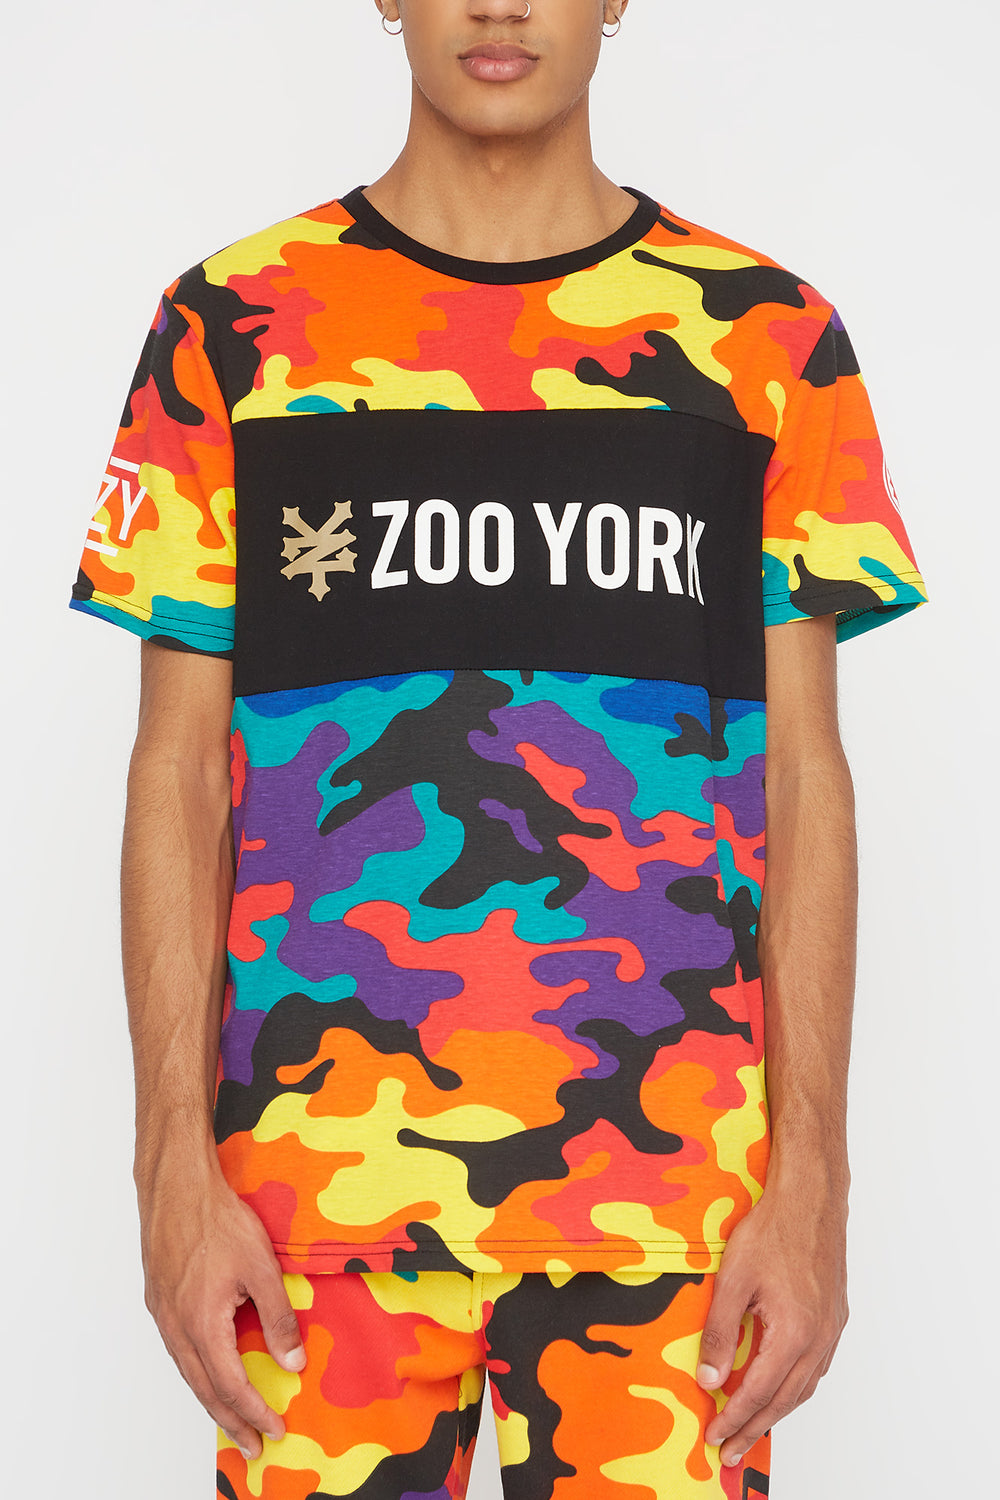 T-Shirt Camouflage Multicolore Zoo York Homme Multi